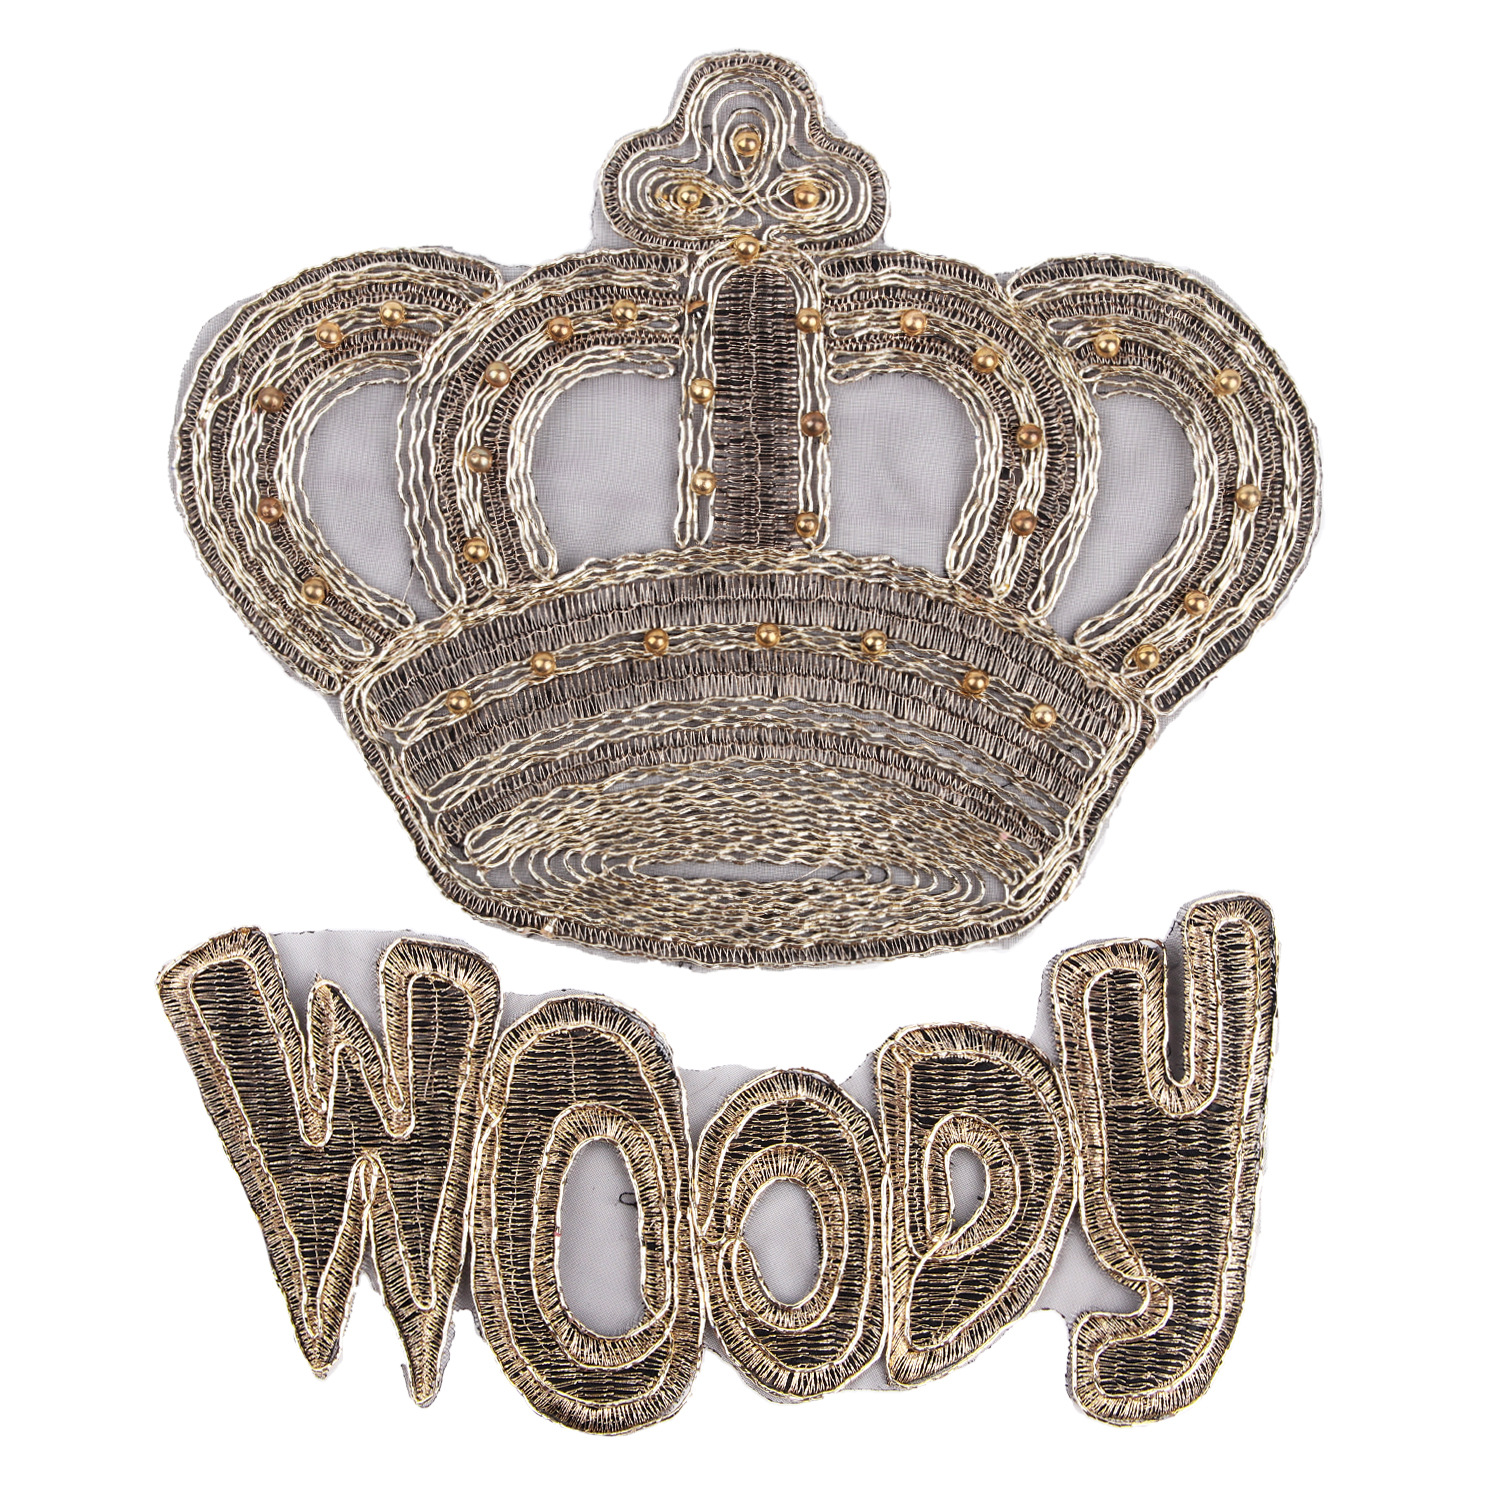 Large Cloth With Sequins, Nail Beads, Gold Silk, Crown Letter, Embroidery, Patch, Patching, Patching, Hole Filling, Clothing